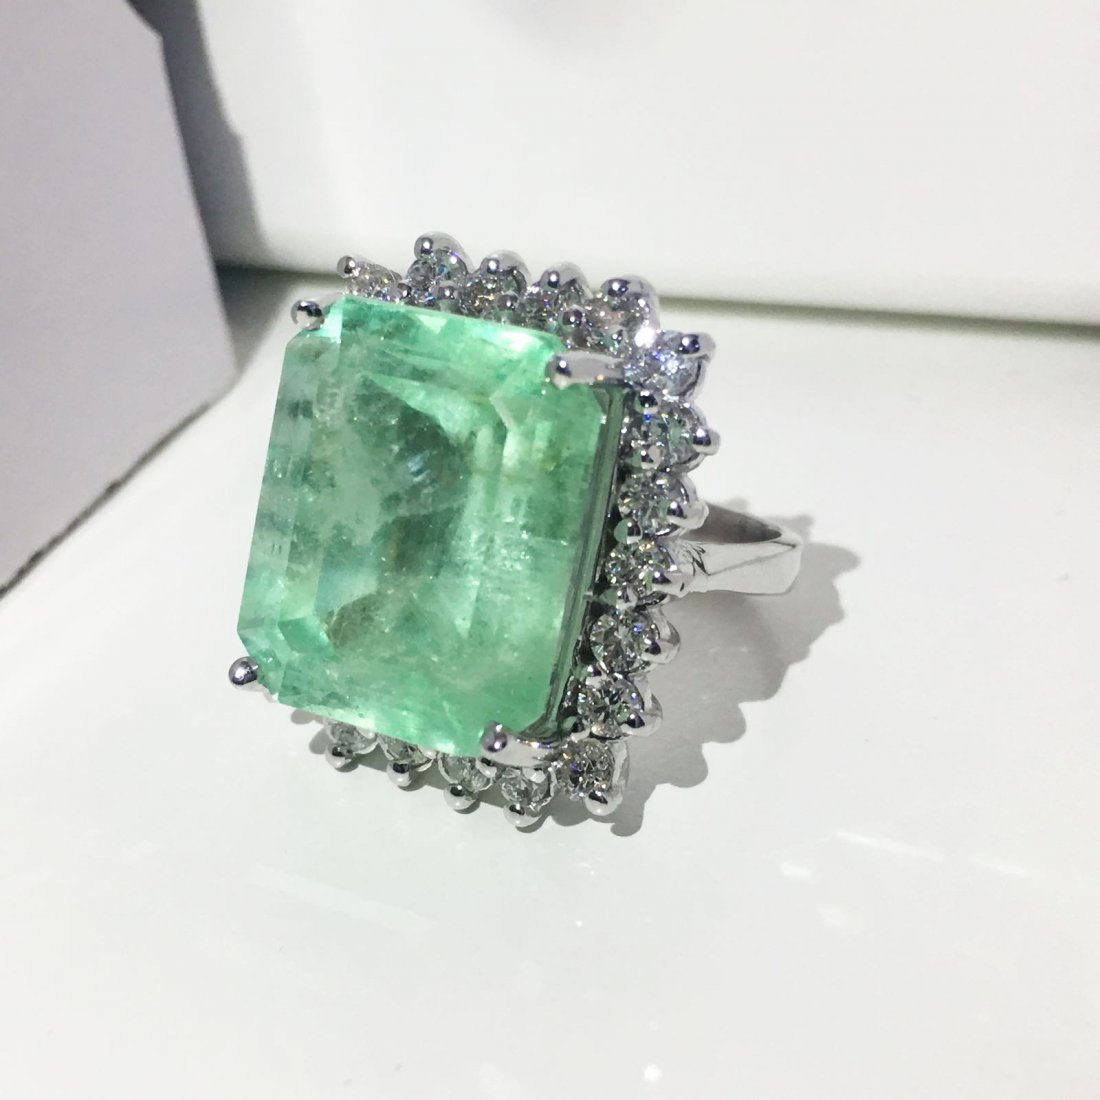 14k Gold, Diamond & 100% natural Colombian Emerald Ring - 2